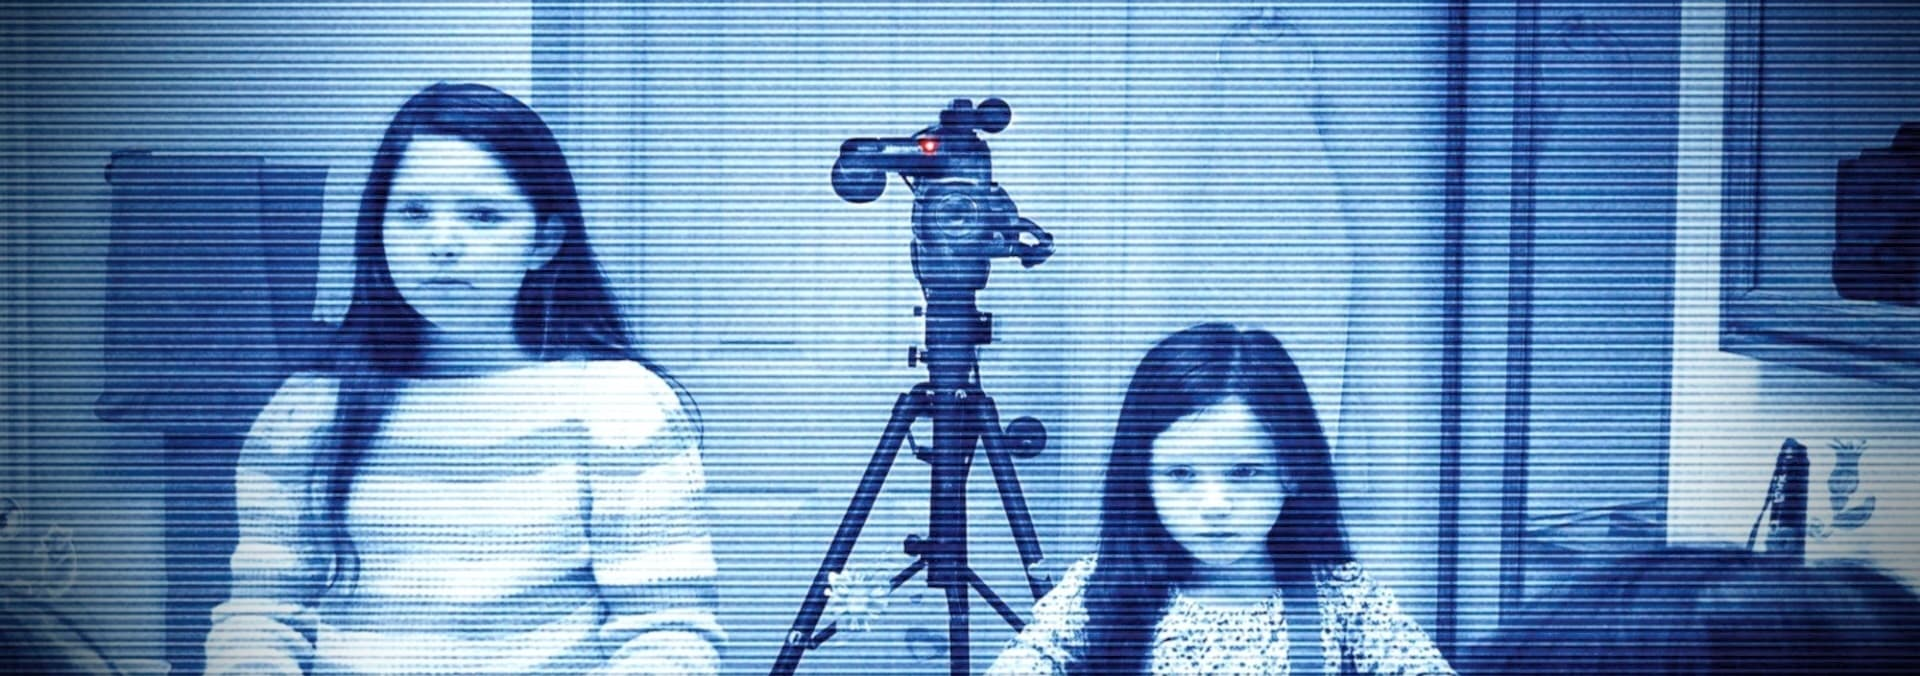 paranormal activity 3 full movie free download